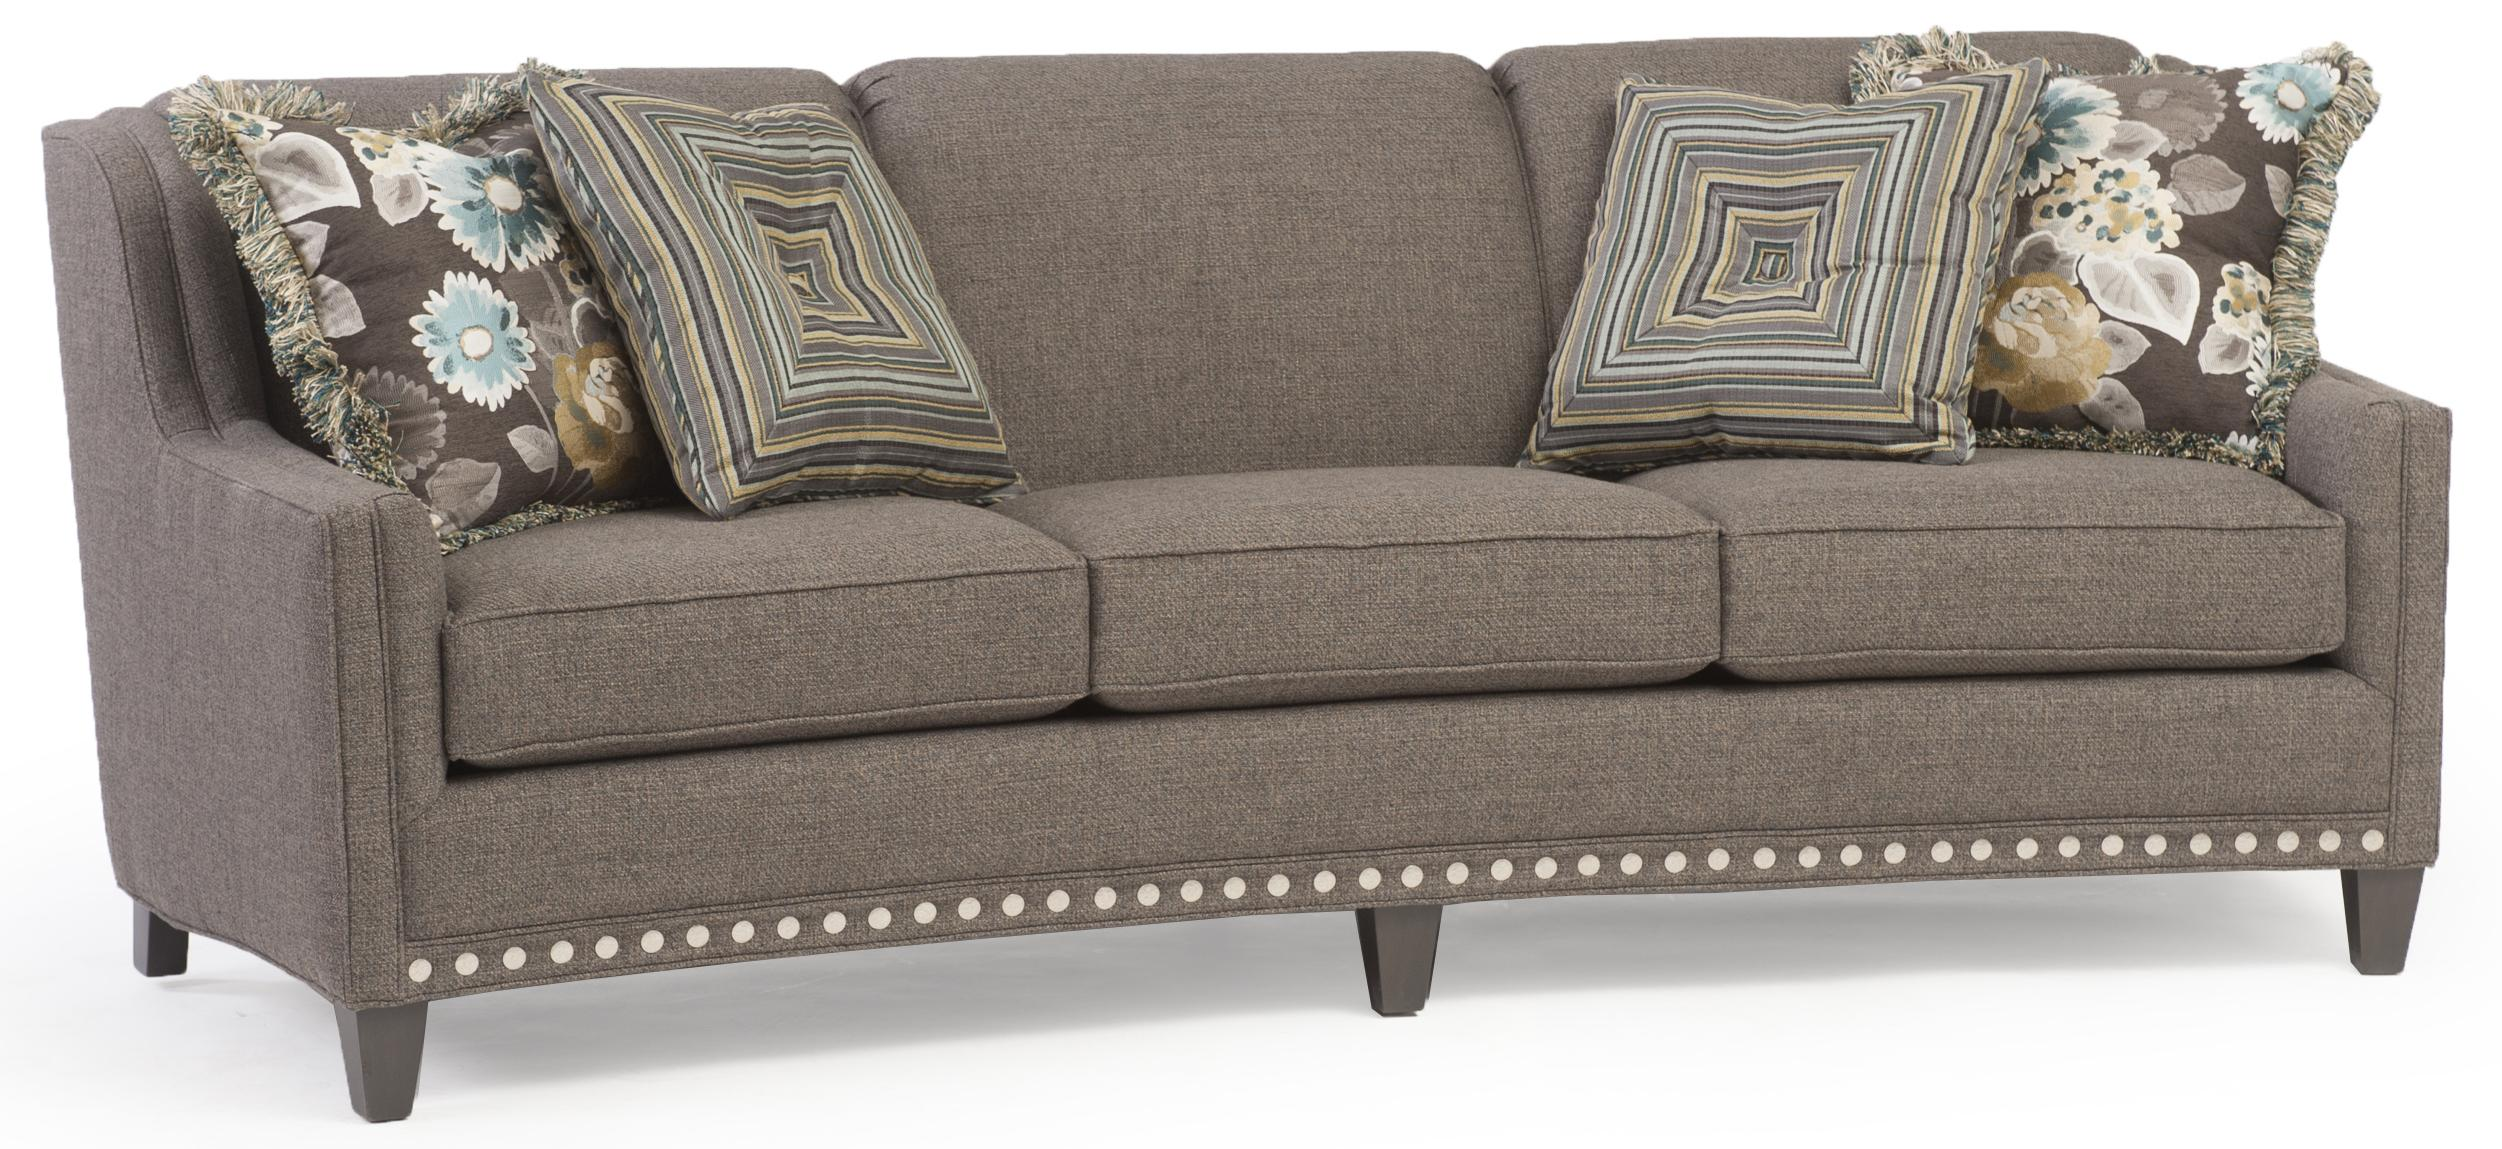 227 Stationary Sofa by Smith Brothers at Wayside Furniture